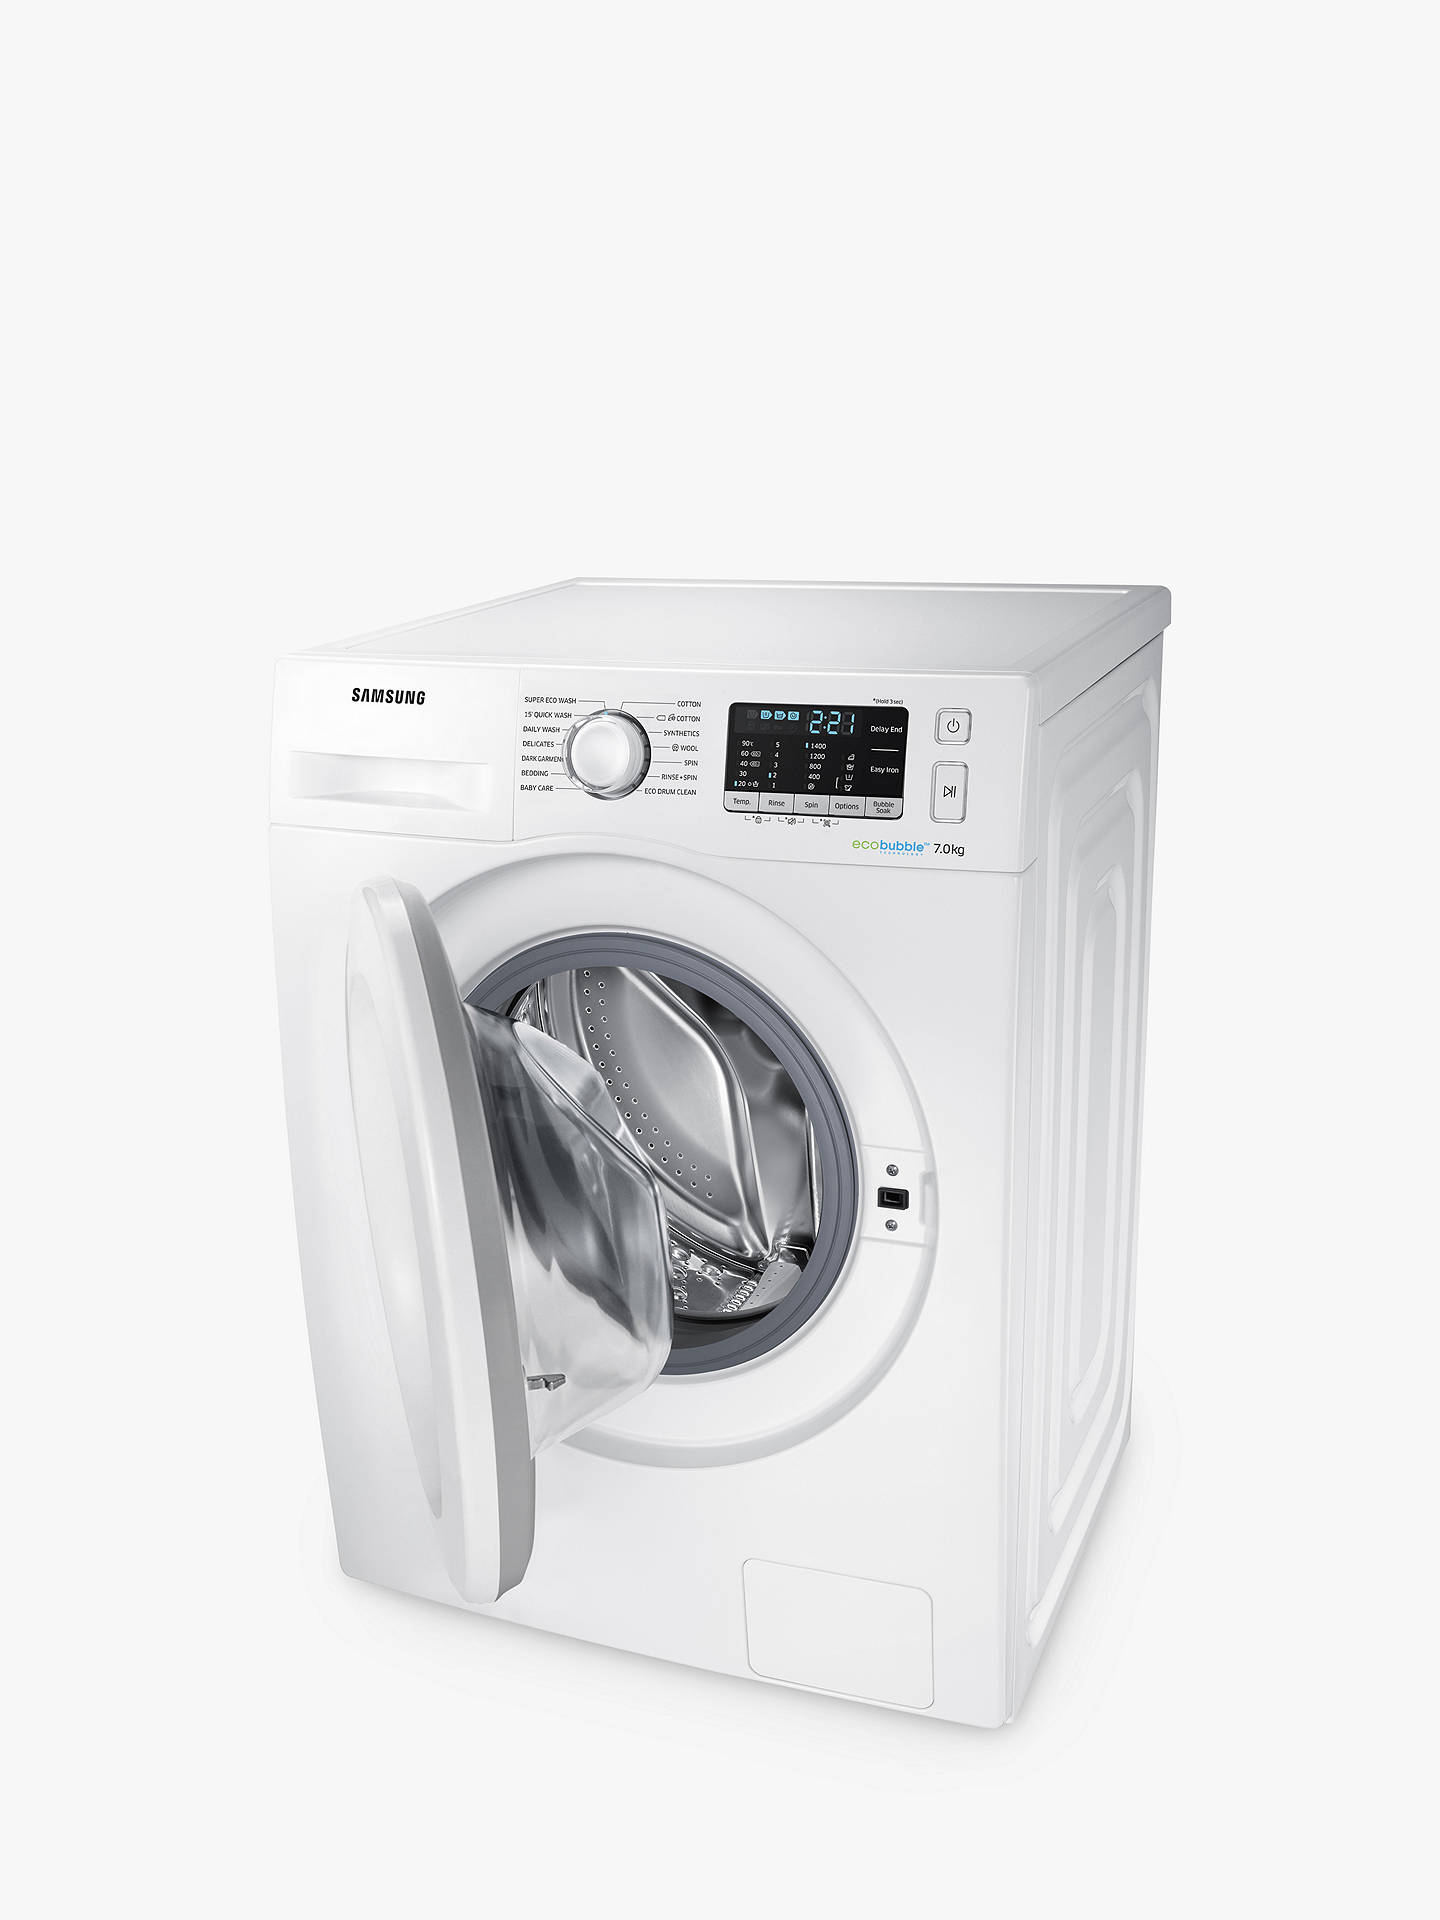 BuySamsung WW70J5555MW/EU ecobubble™ Freestanding Washing Machine, 7kg Load, A+++ Energy Rating, 1400rpm Spin, White Online at johnlewis.com